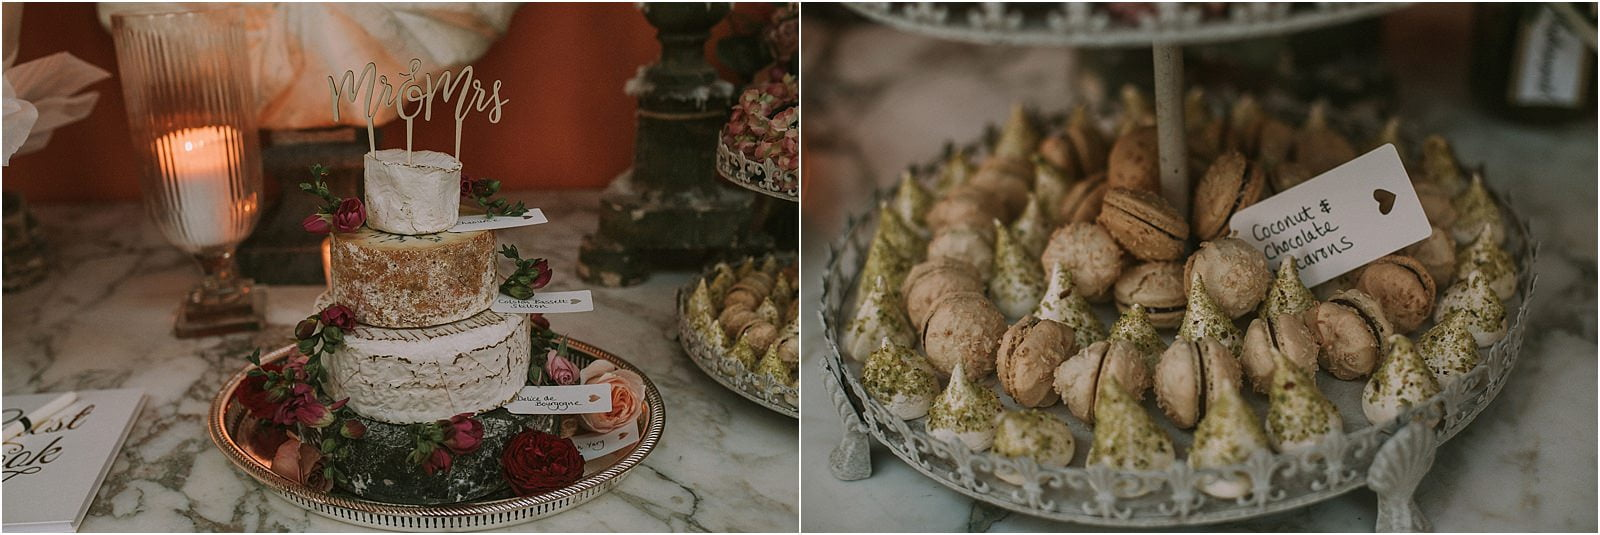 cotswolds rustic wedding